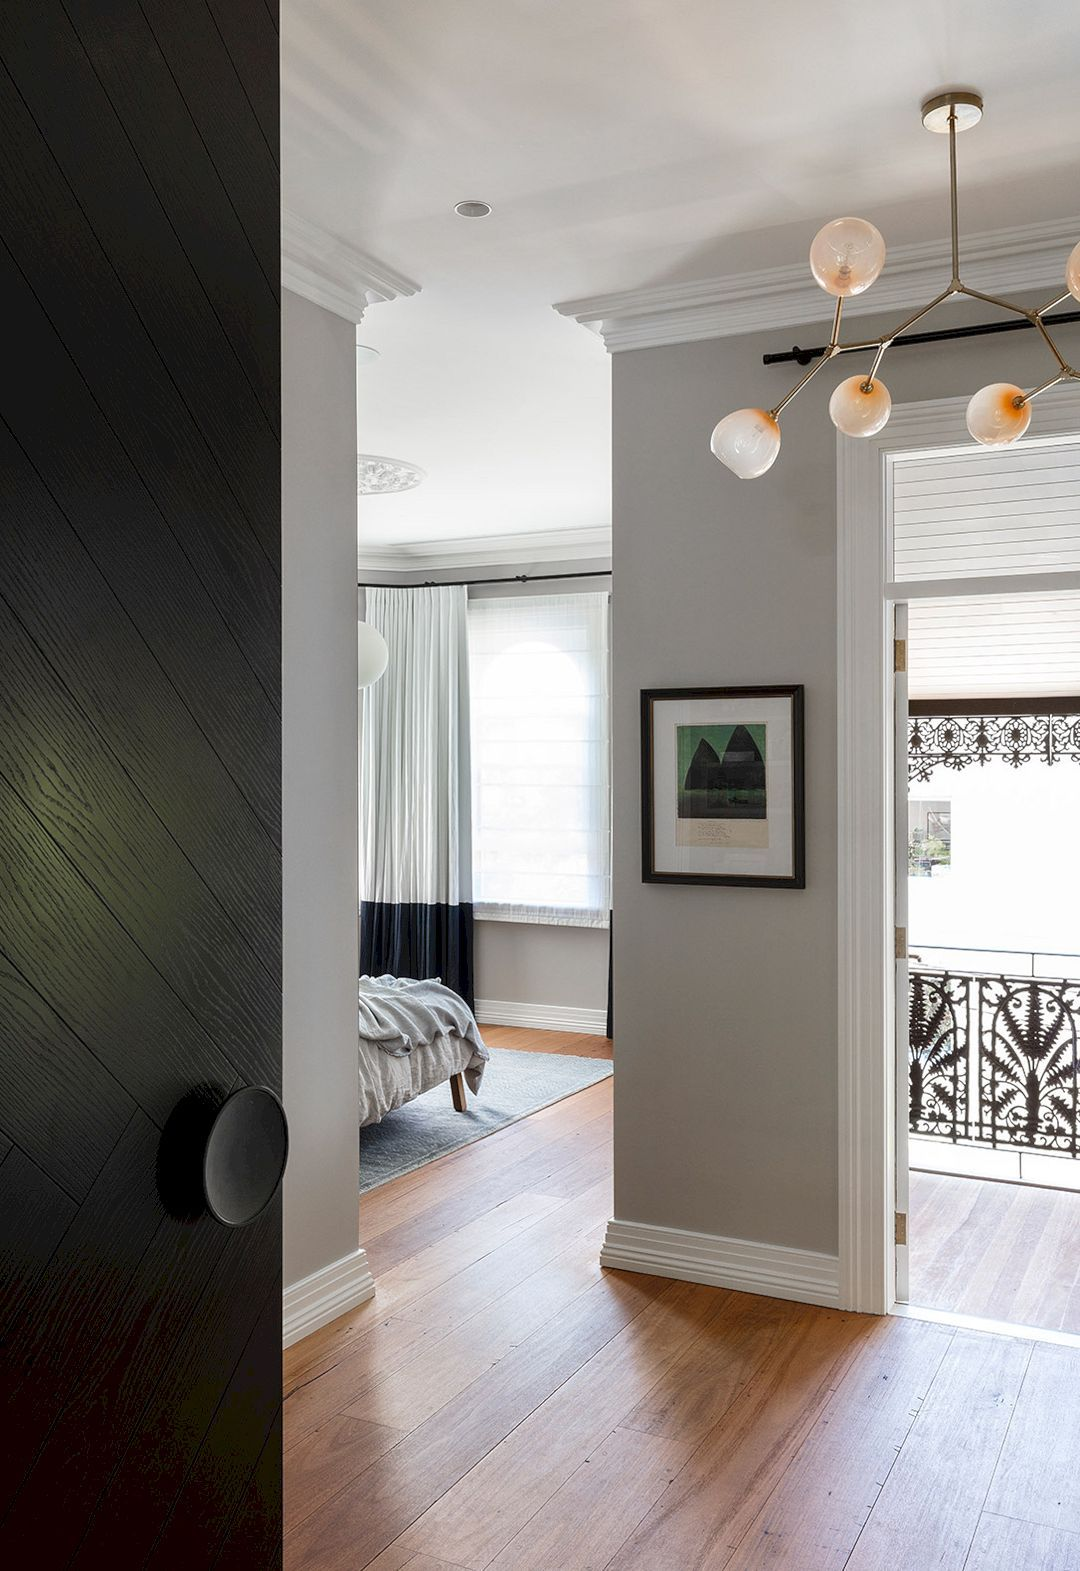 Barcom Terrace A Heritage Architecture With Contemporary Interior